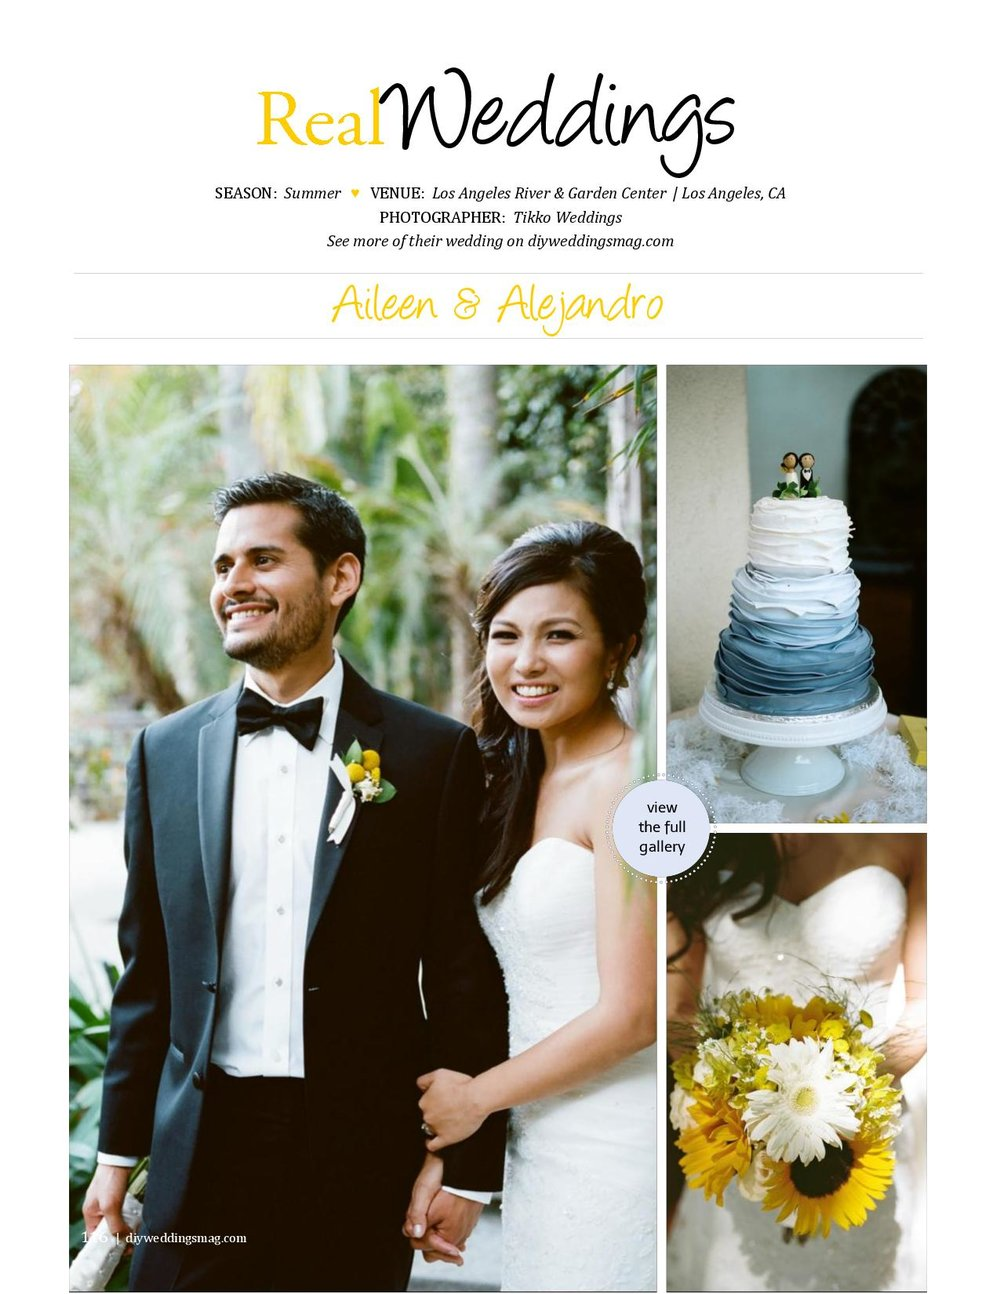 Aileen & Alejandro-DIY Weddings Mag-page-001.jpg